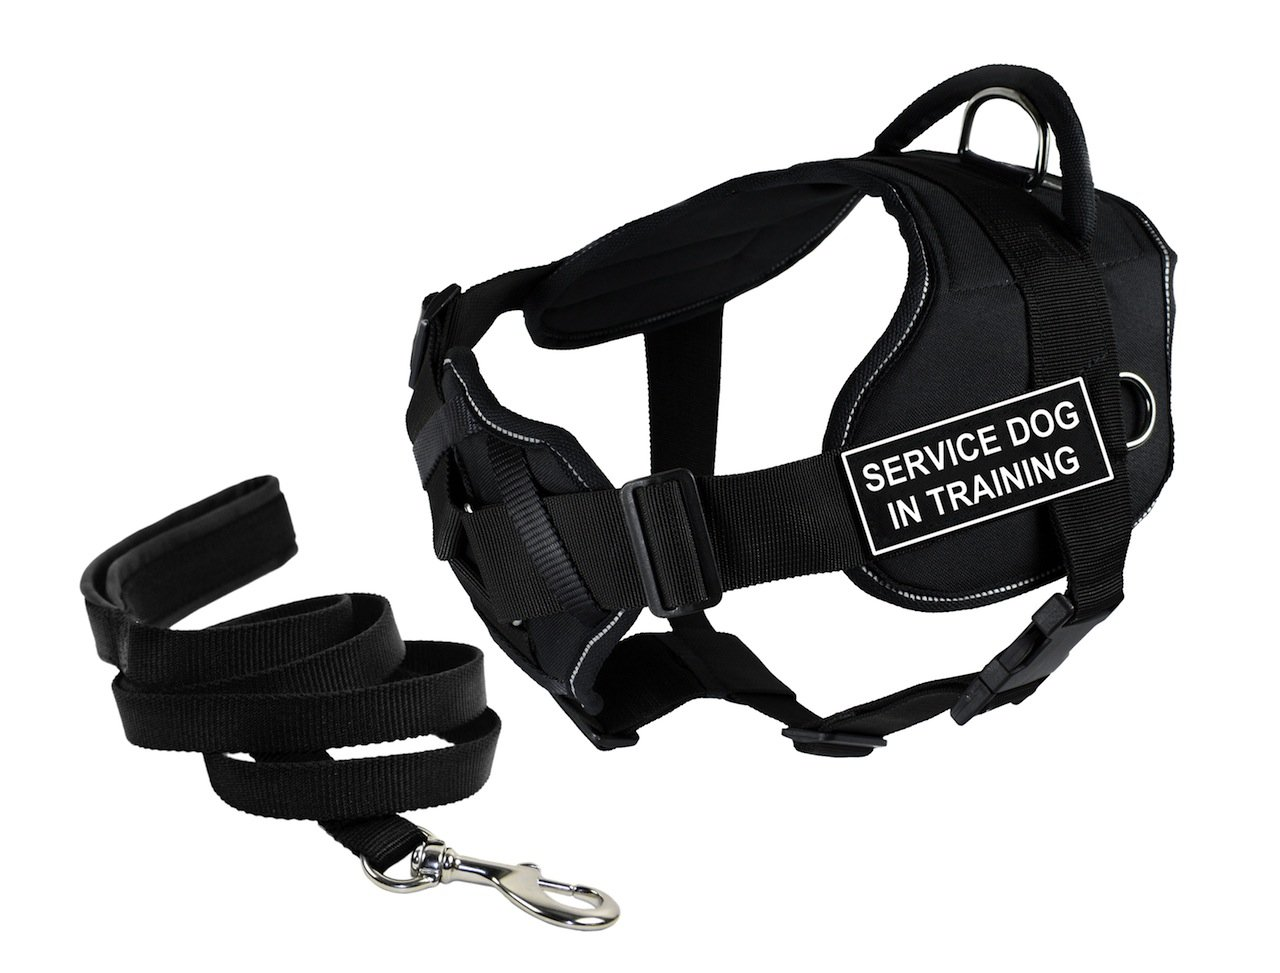 Dean & Tyler's DT Fun Chest Support ''SERVICE DOG IN TRAINING '' Harness with Reflective Trim, Large, and 6 ft Padded Puppy Leash.